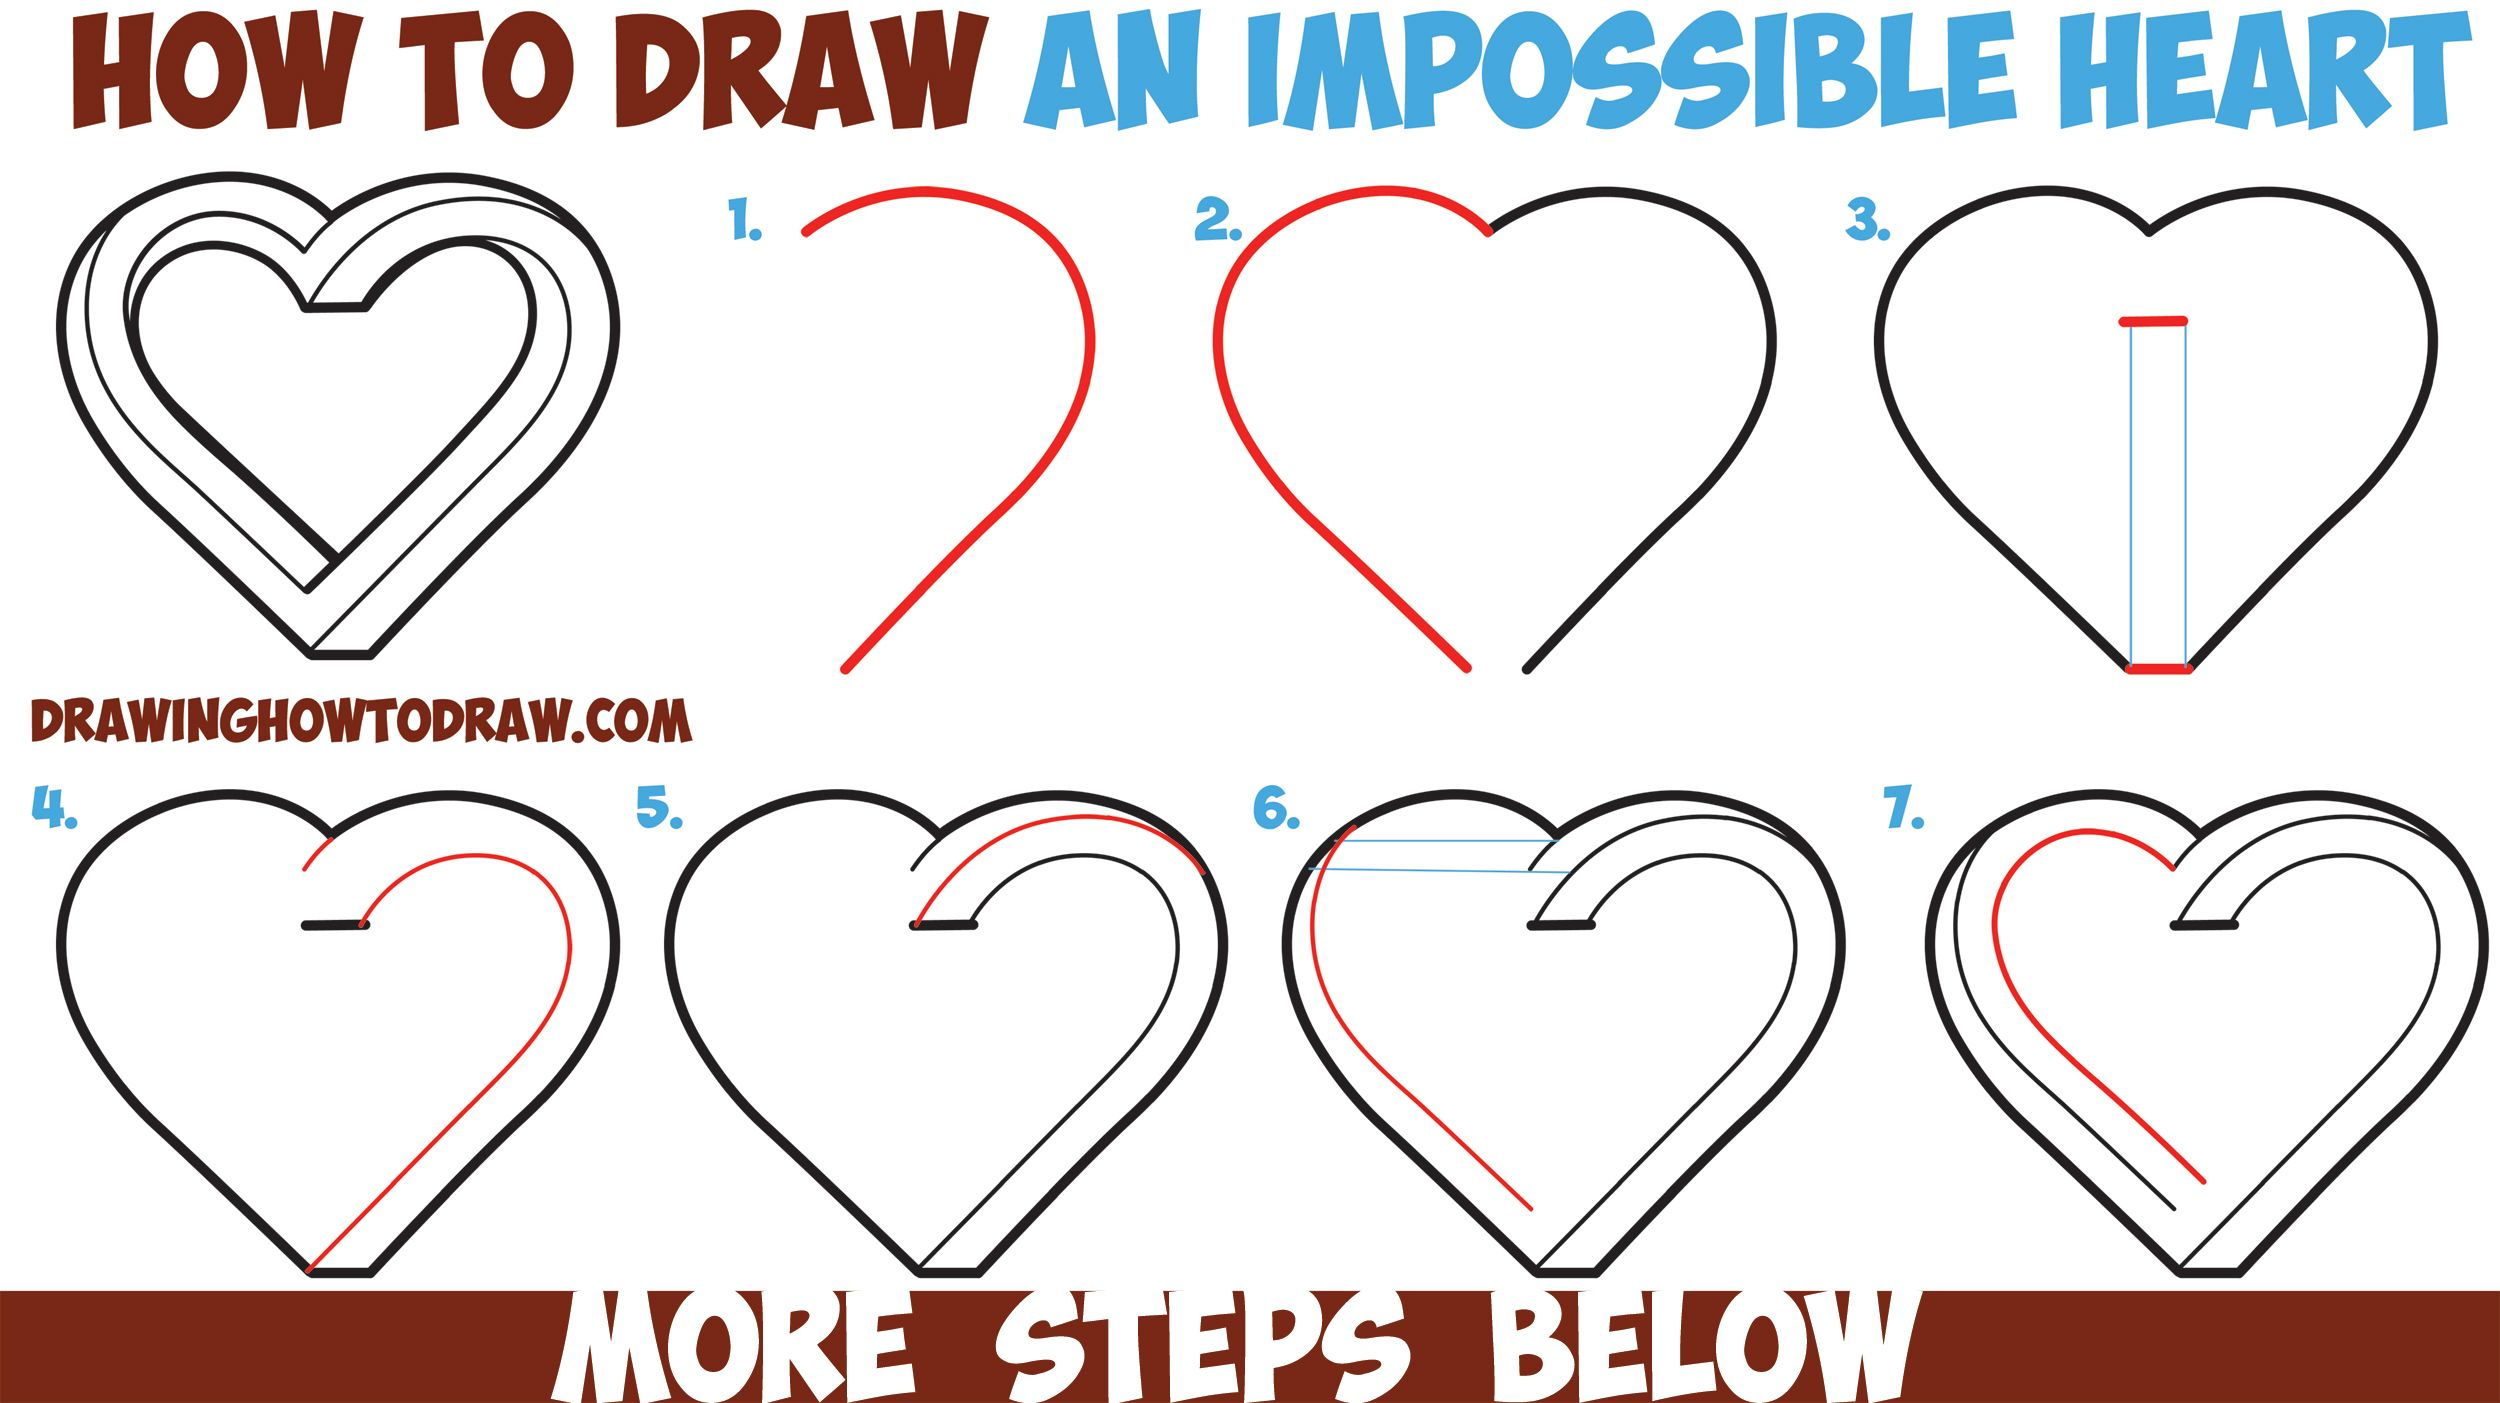 How to draw an impossible heart easy step by step for Easy drawing ideas for beginners